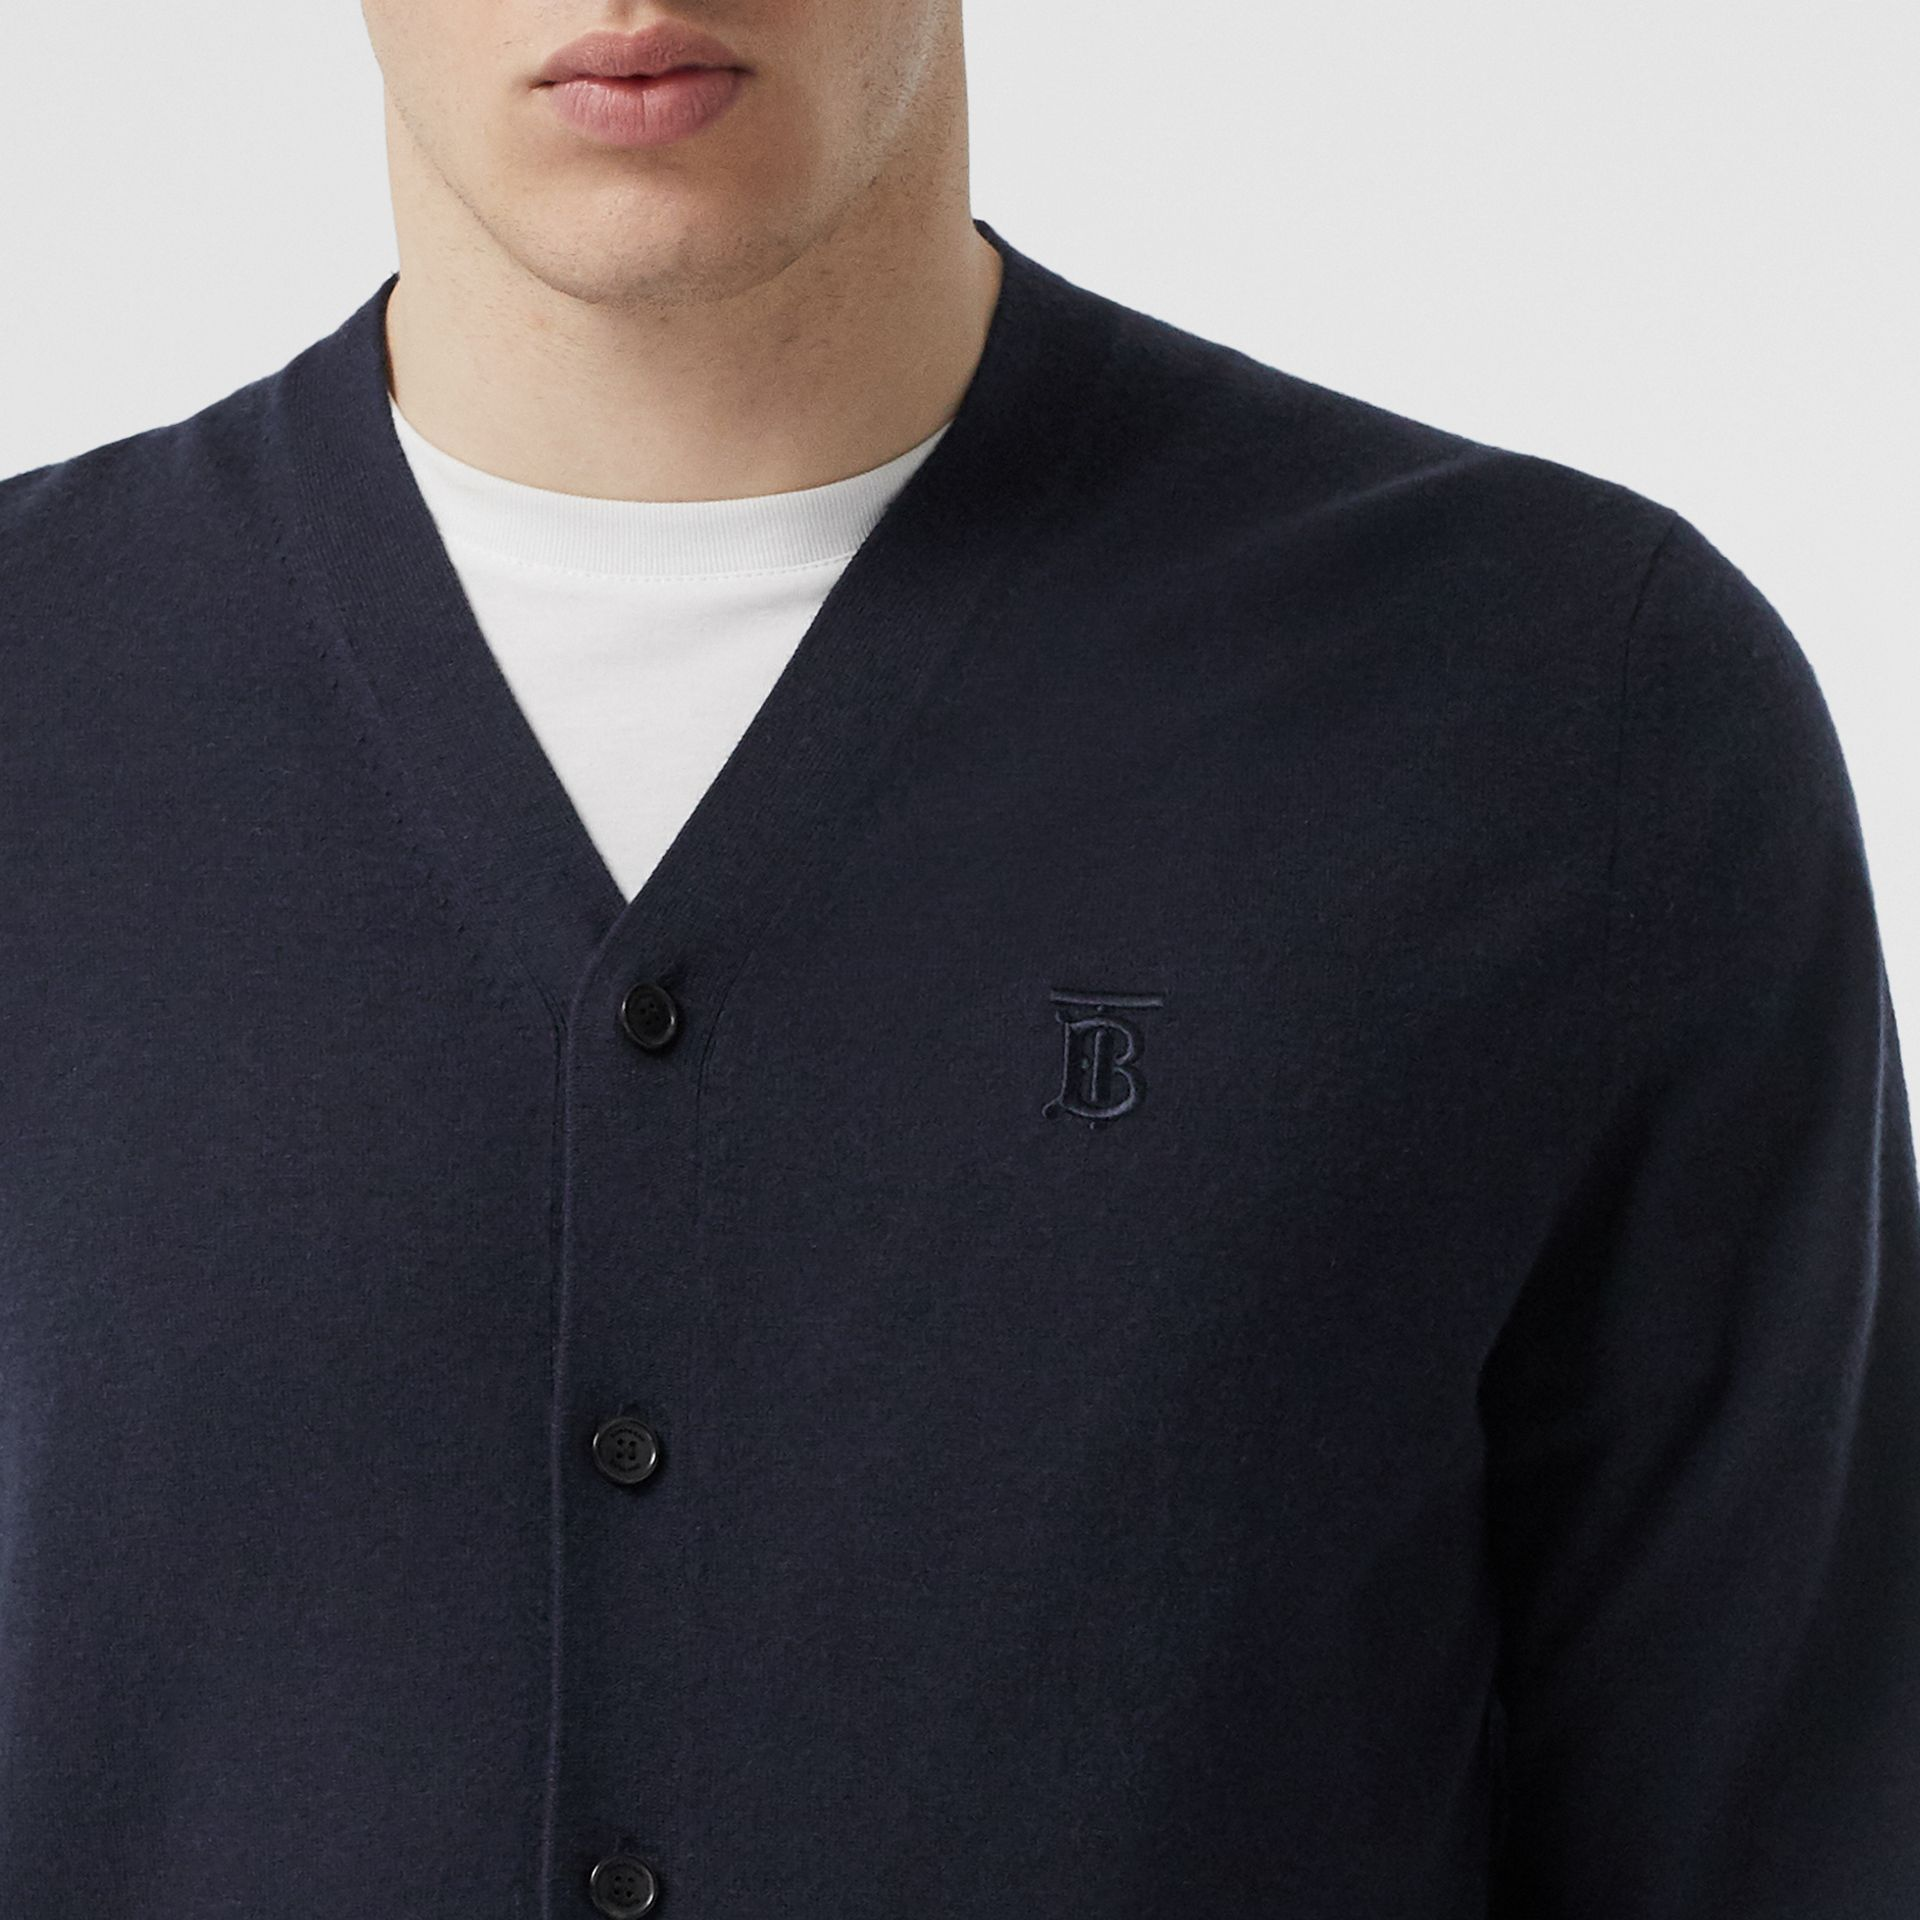 Monogram Motif Cashmere Cardigan in Navy - Men | Burberry - gallery image 1